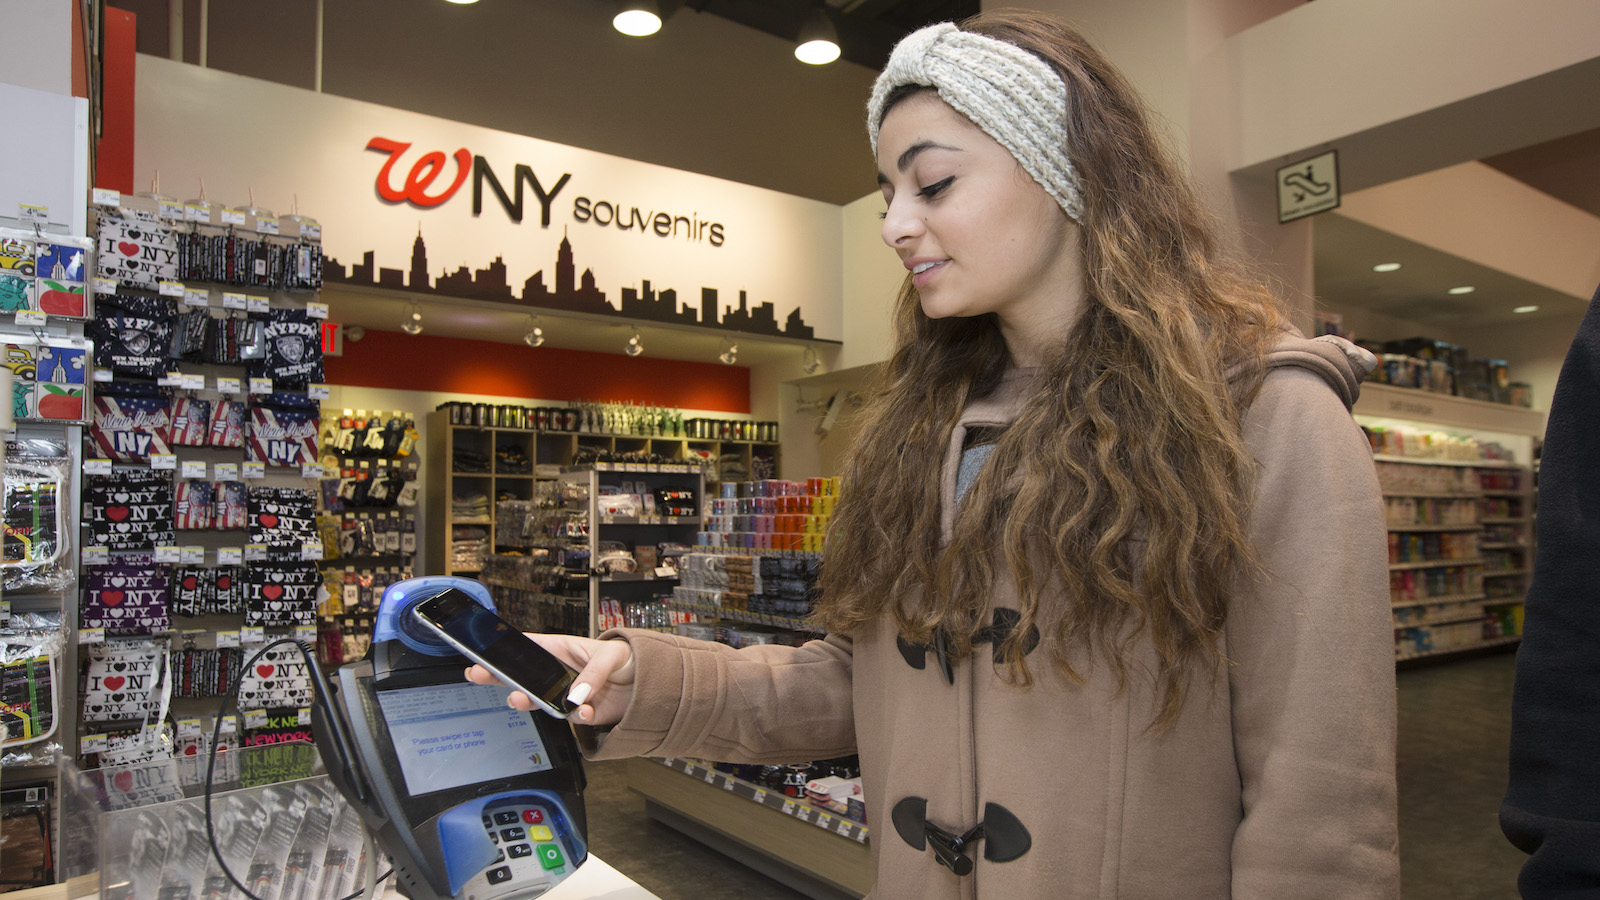 IMAGE DISTRIBUTED FOR MASTERCARD - A customer makes a purchase with a MasterCard using Apple Pay on the iPhone 6 at Walgreens in Times Square, Monday, Oct. 20, 2014, in New York. The service launched Monday.